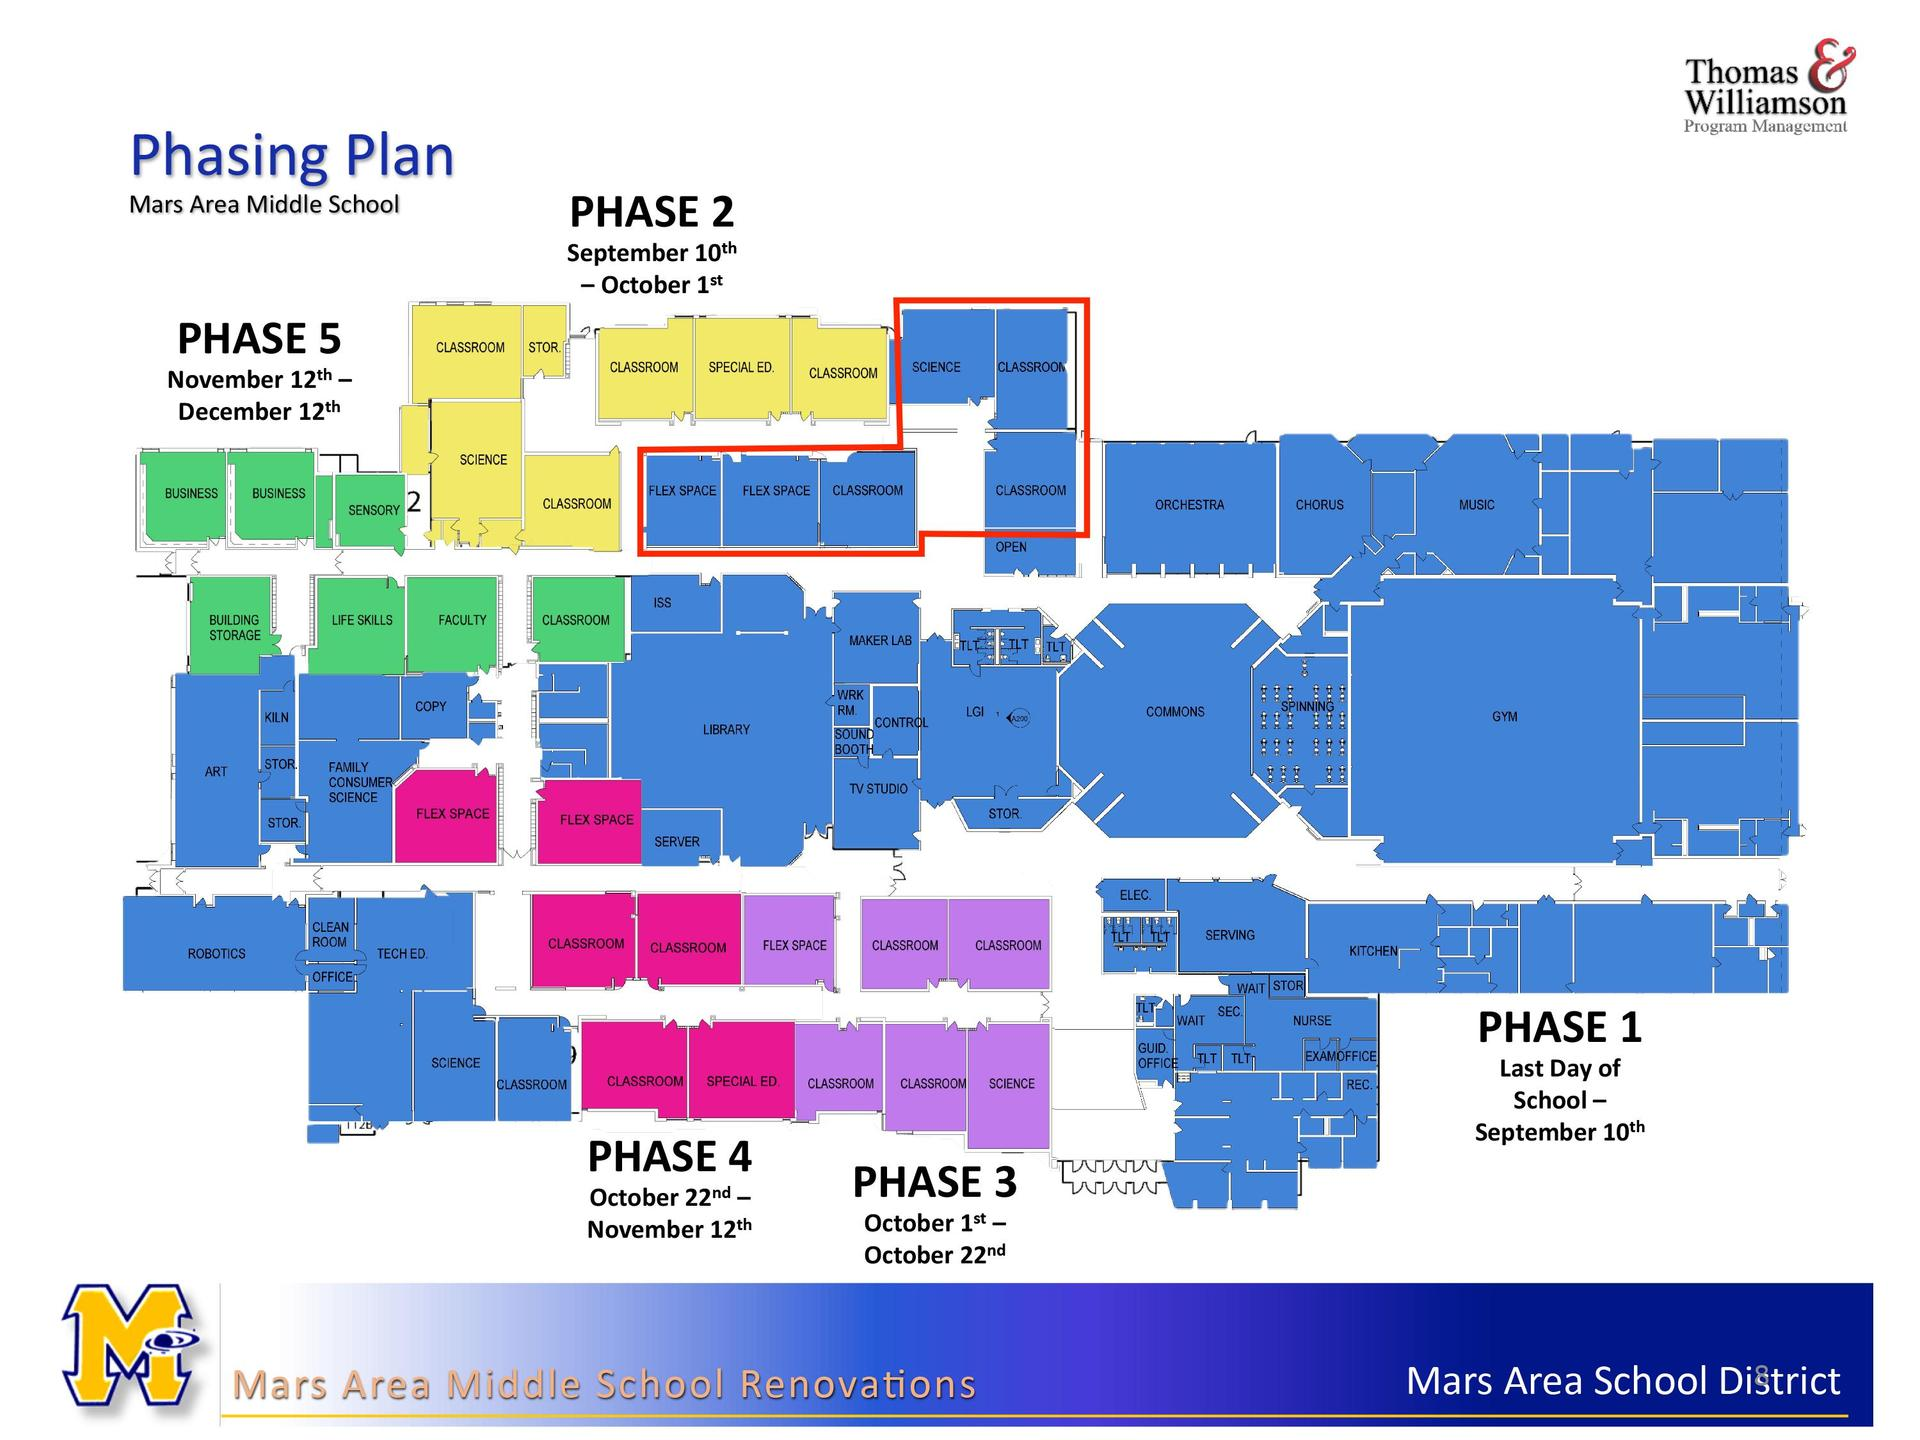 Mars Area Middle School Renovation Project Phasing Plan